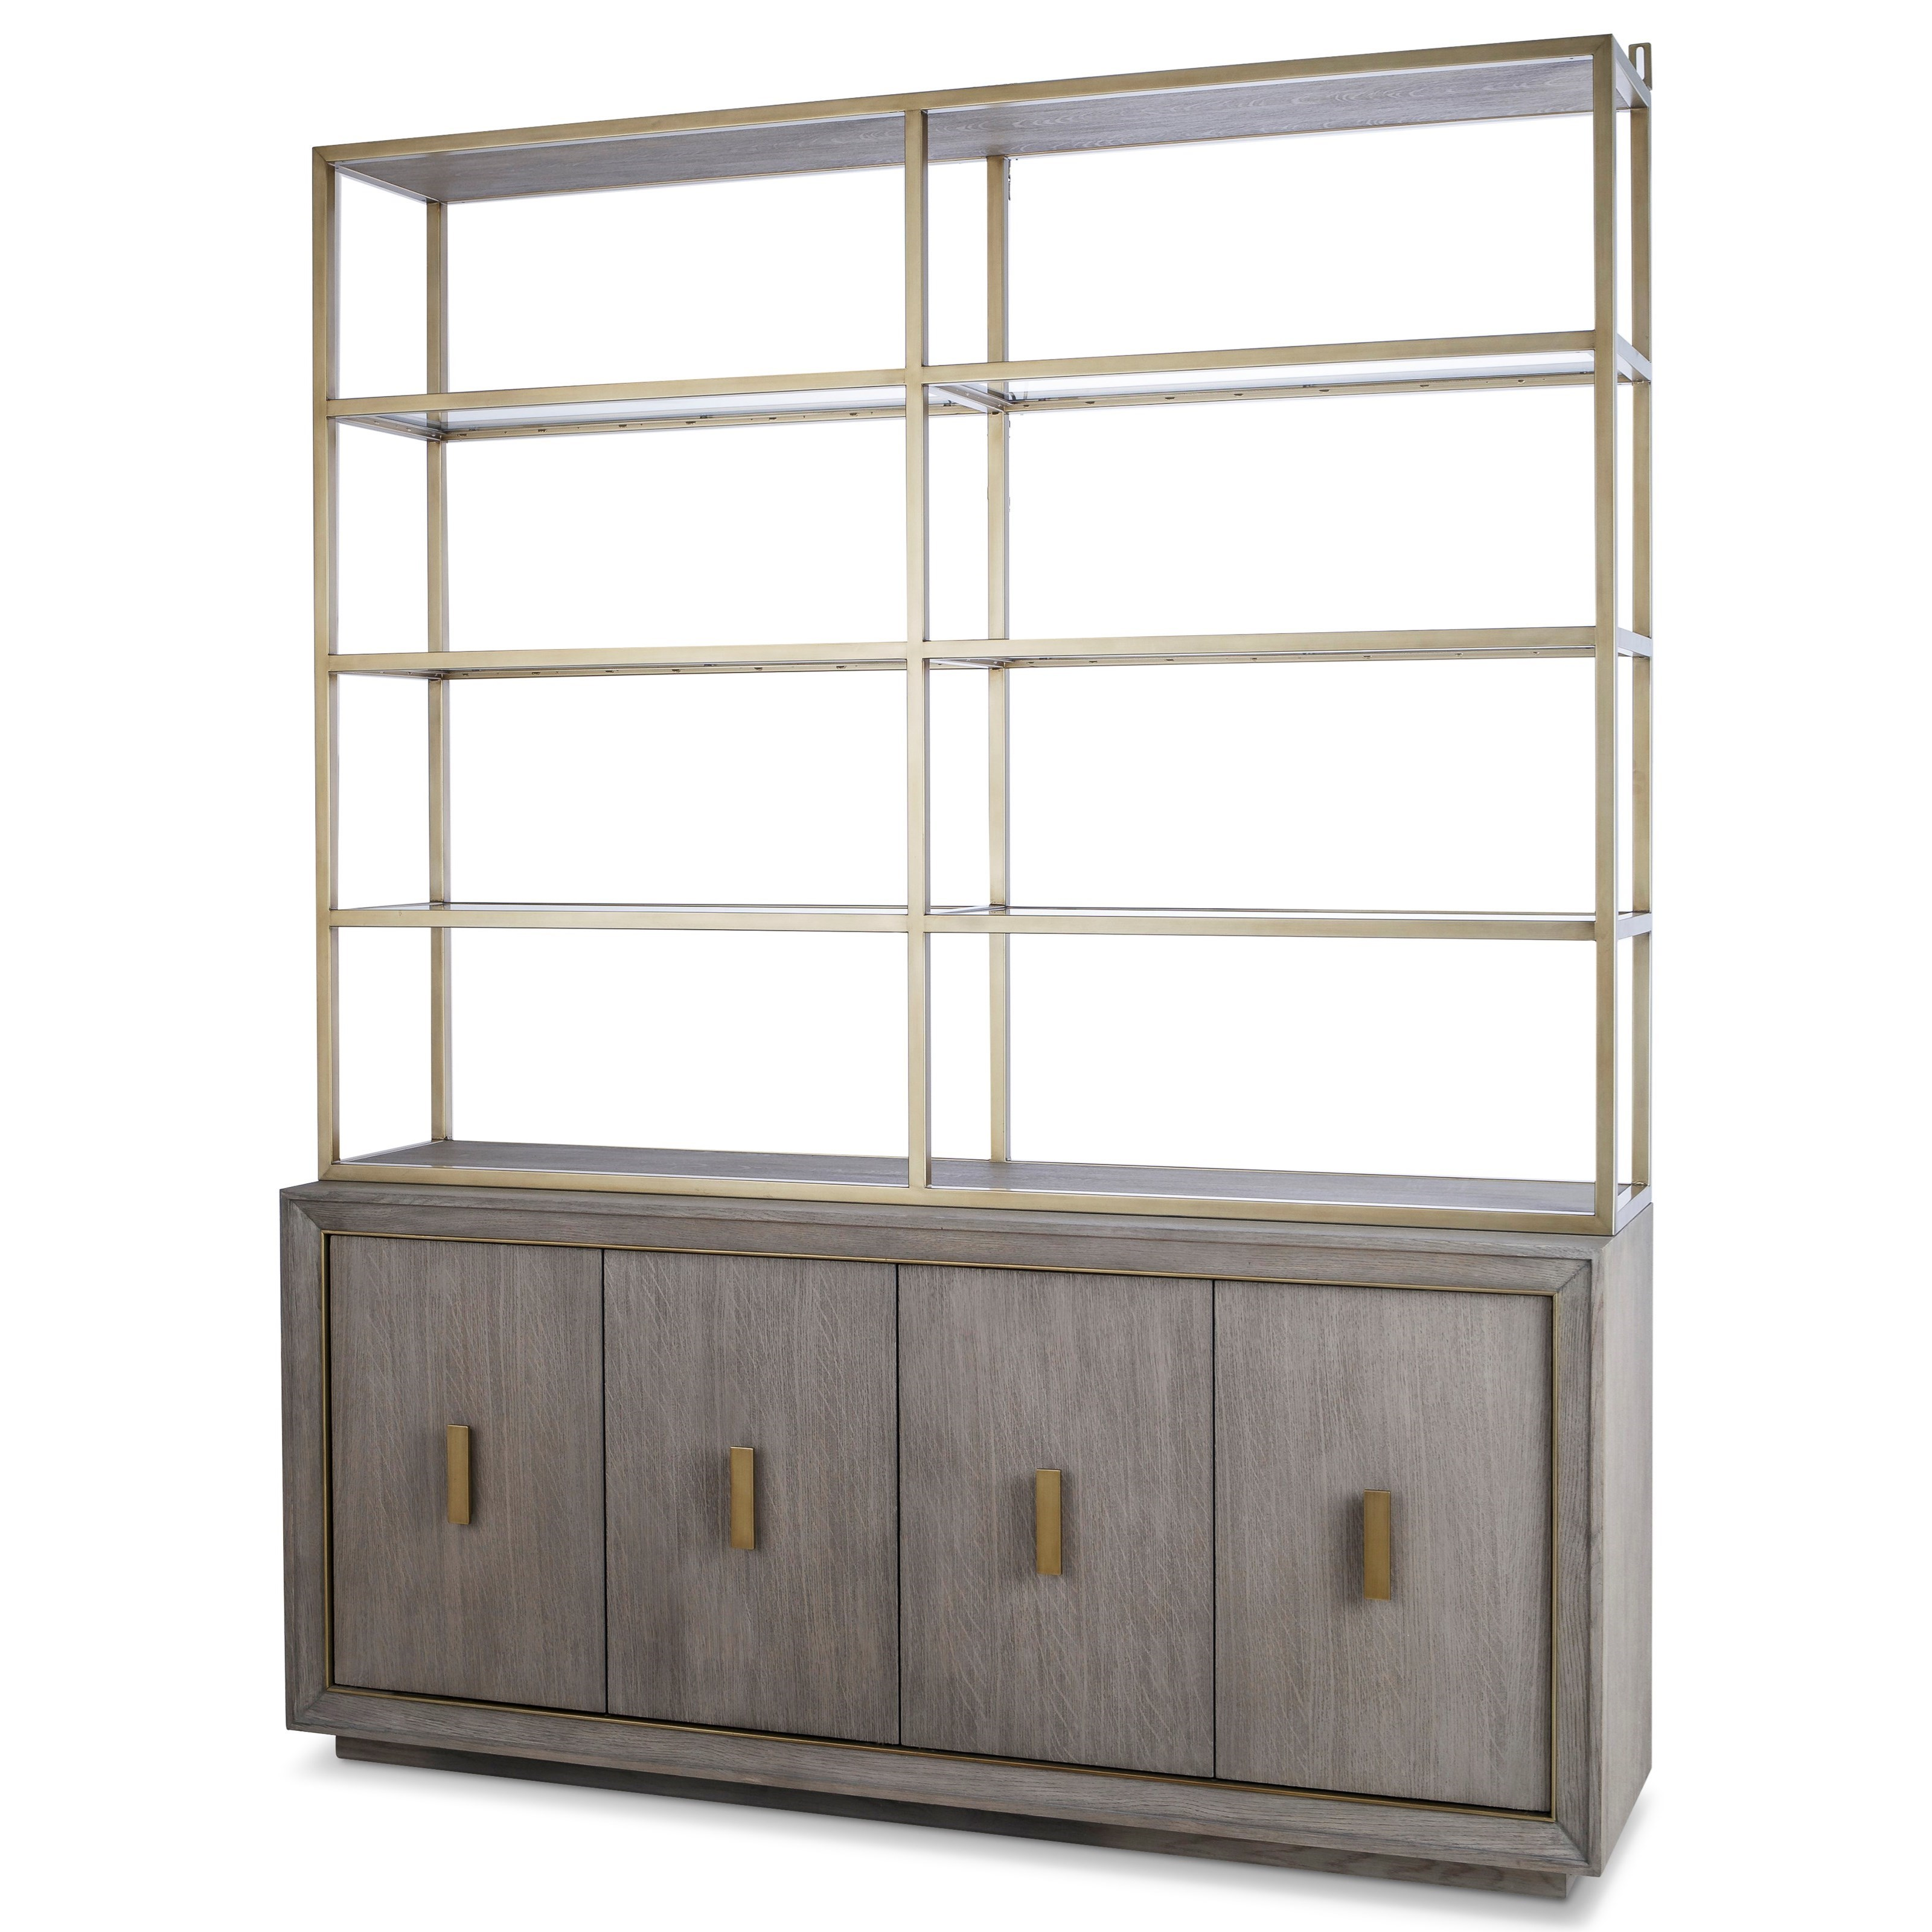 Archive Home and Monarch Kendall Dining Credenza and Hutch by Century at Alison Craig Home Furnishings